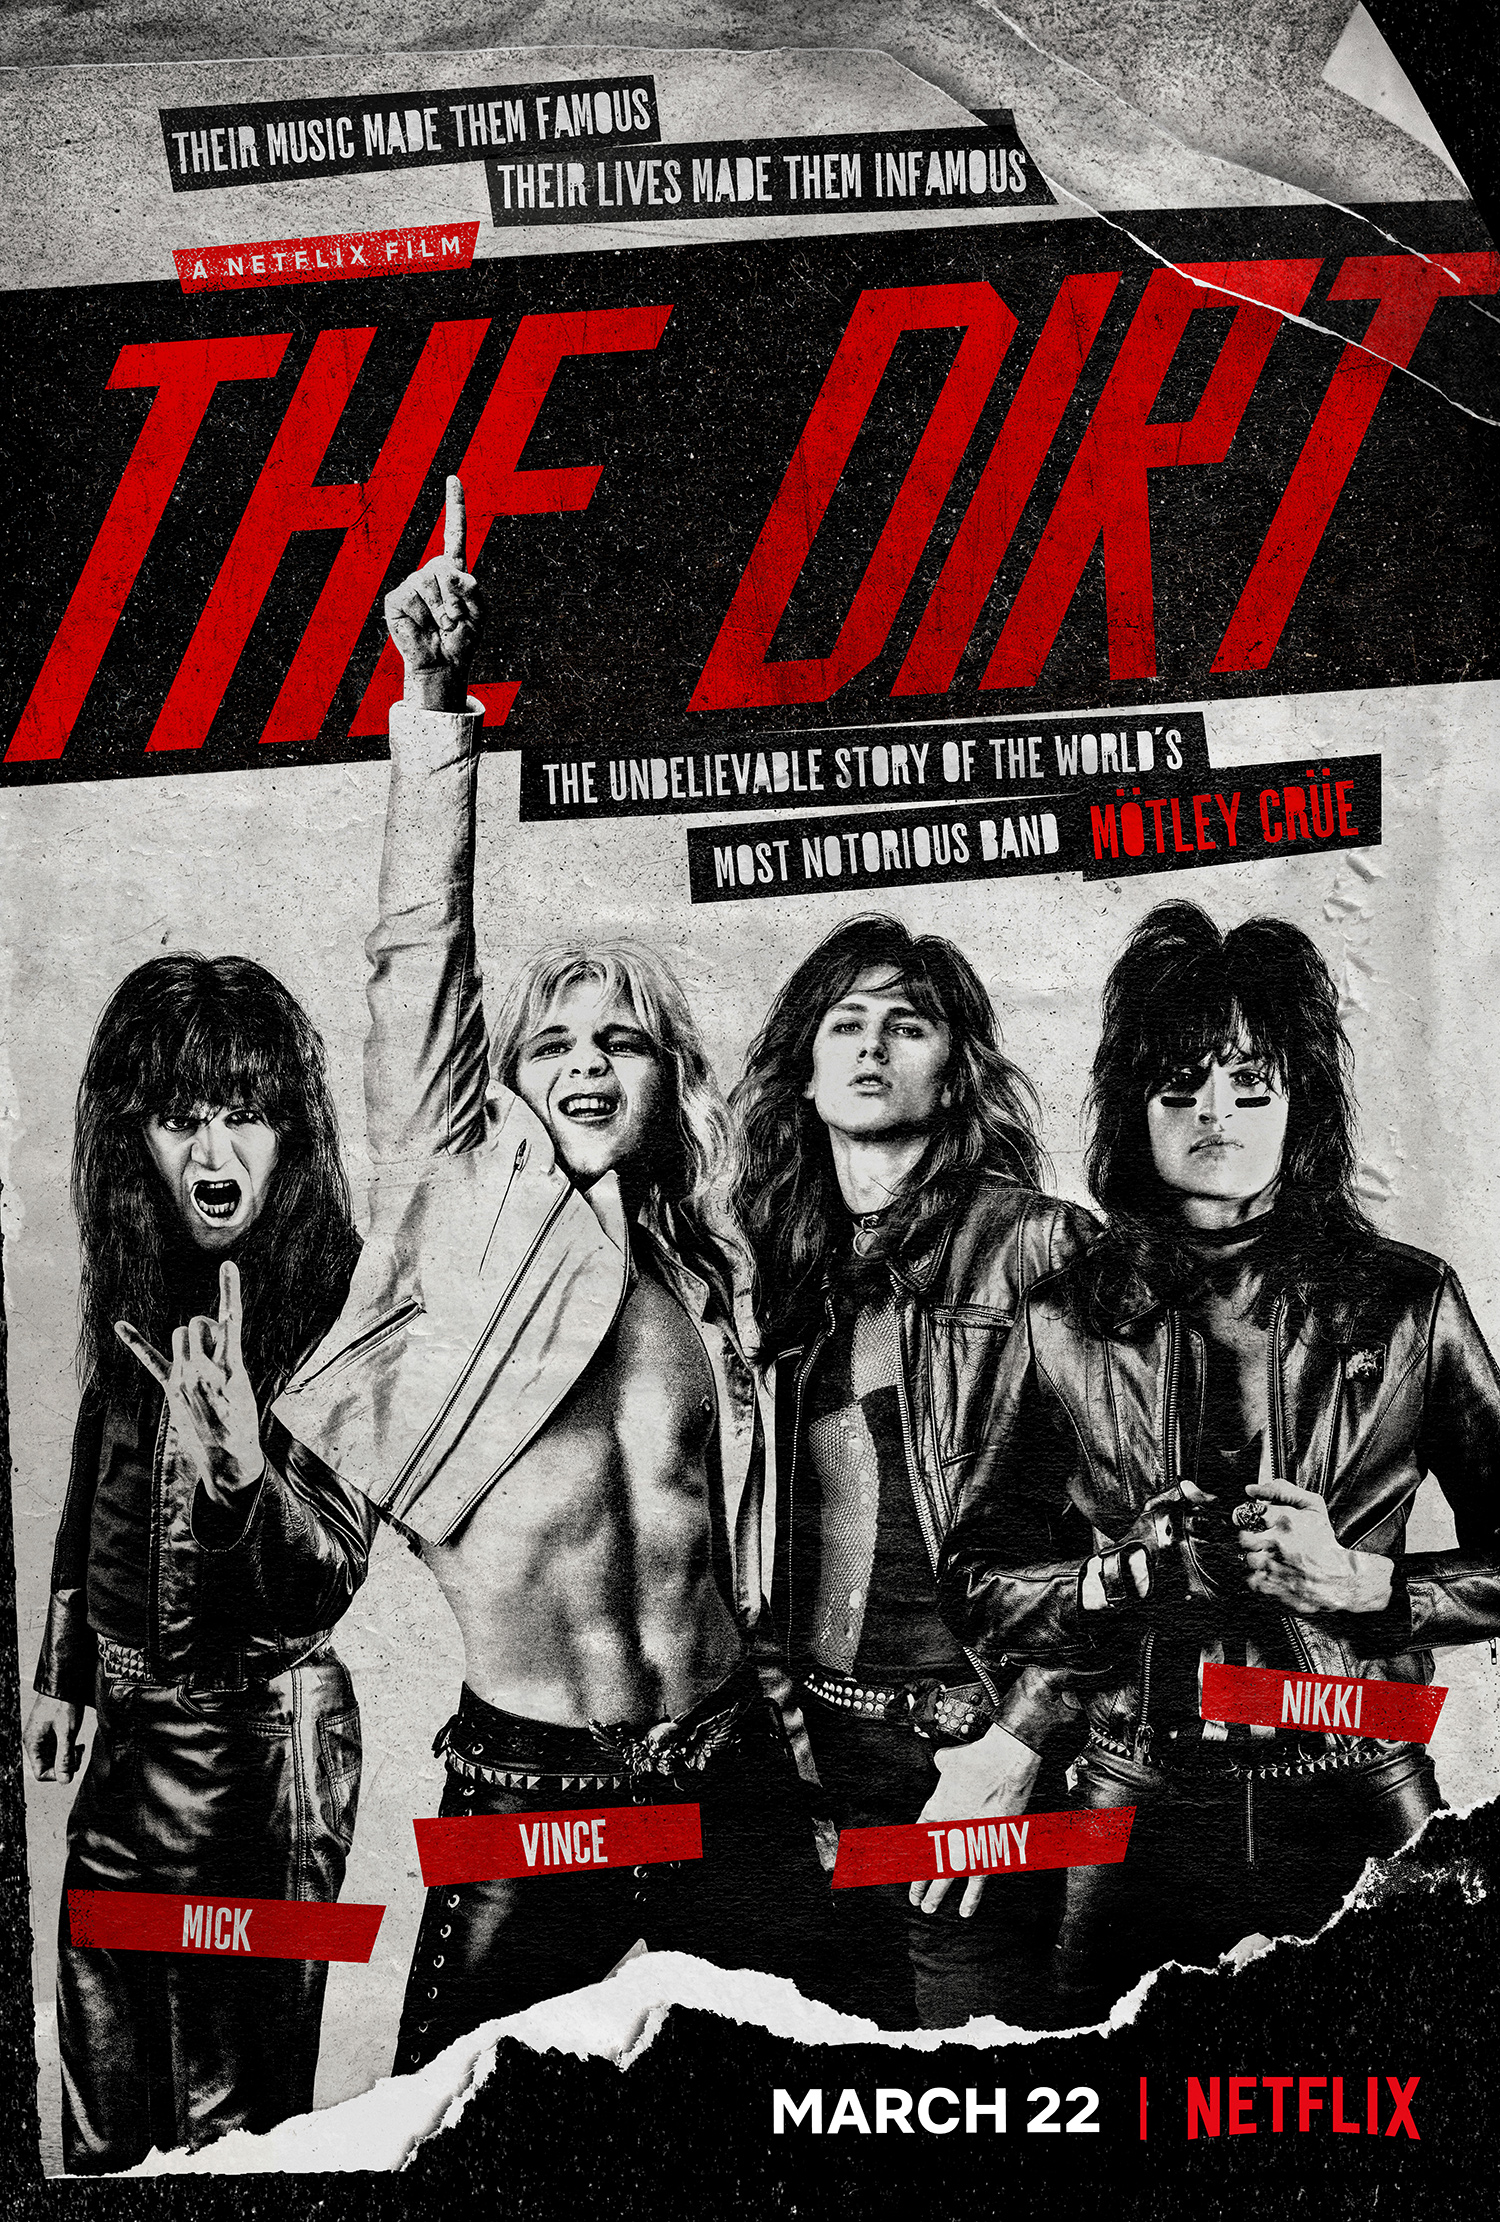 The Dirt (2019) - Directed by: Jeff TremaineStarring: Colson Baker, Douglas Booth, Daniel Webber, Iwan Rheon, David CostabileRated: RRunning Time: 1 h 48 mTMM Score: 3 StarsSTRENGTHS: Good Music, Solid Performances, Very EntertainingWEAKNESSES: Messy Story, Clunky Dialogue, Sloppy Direction, Not Enough Grit